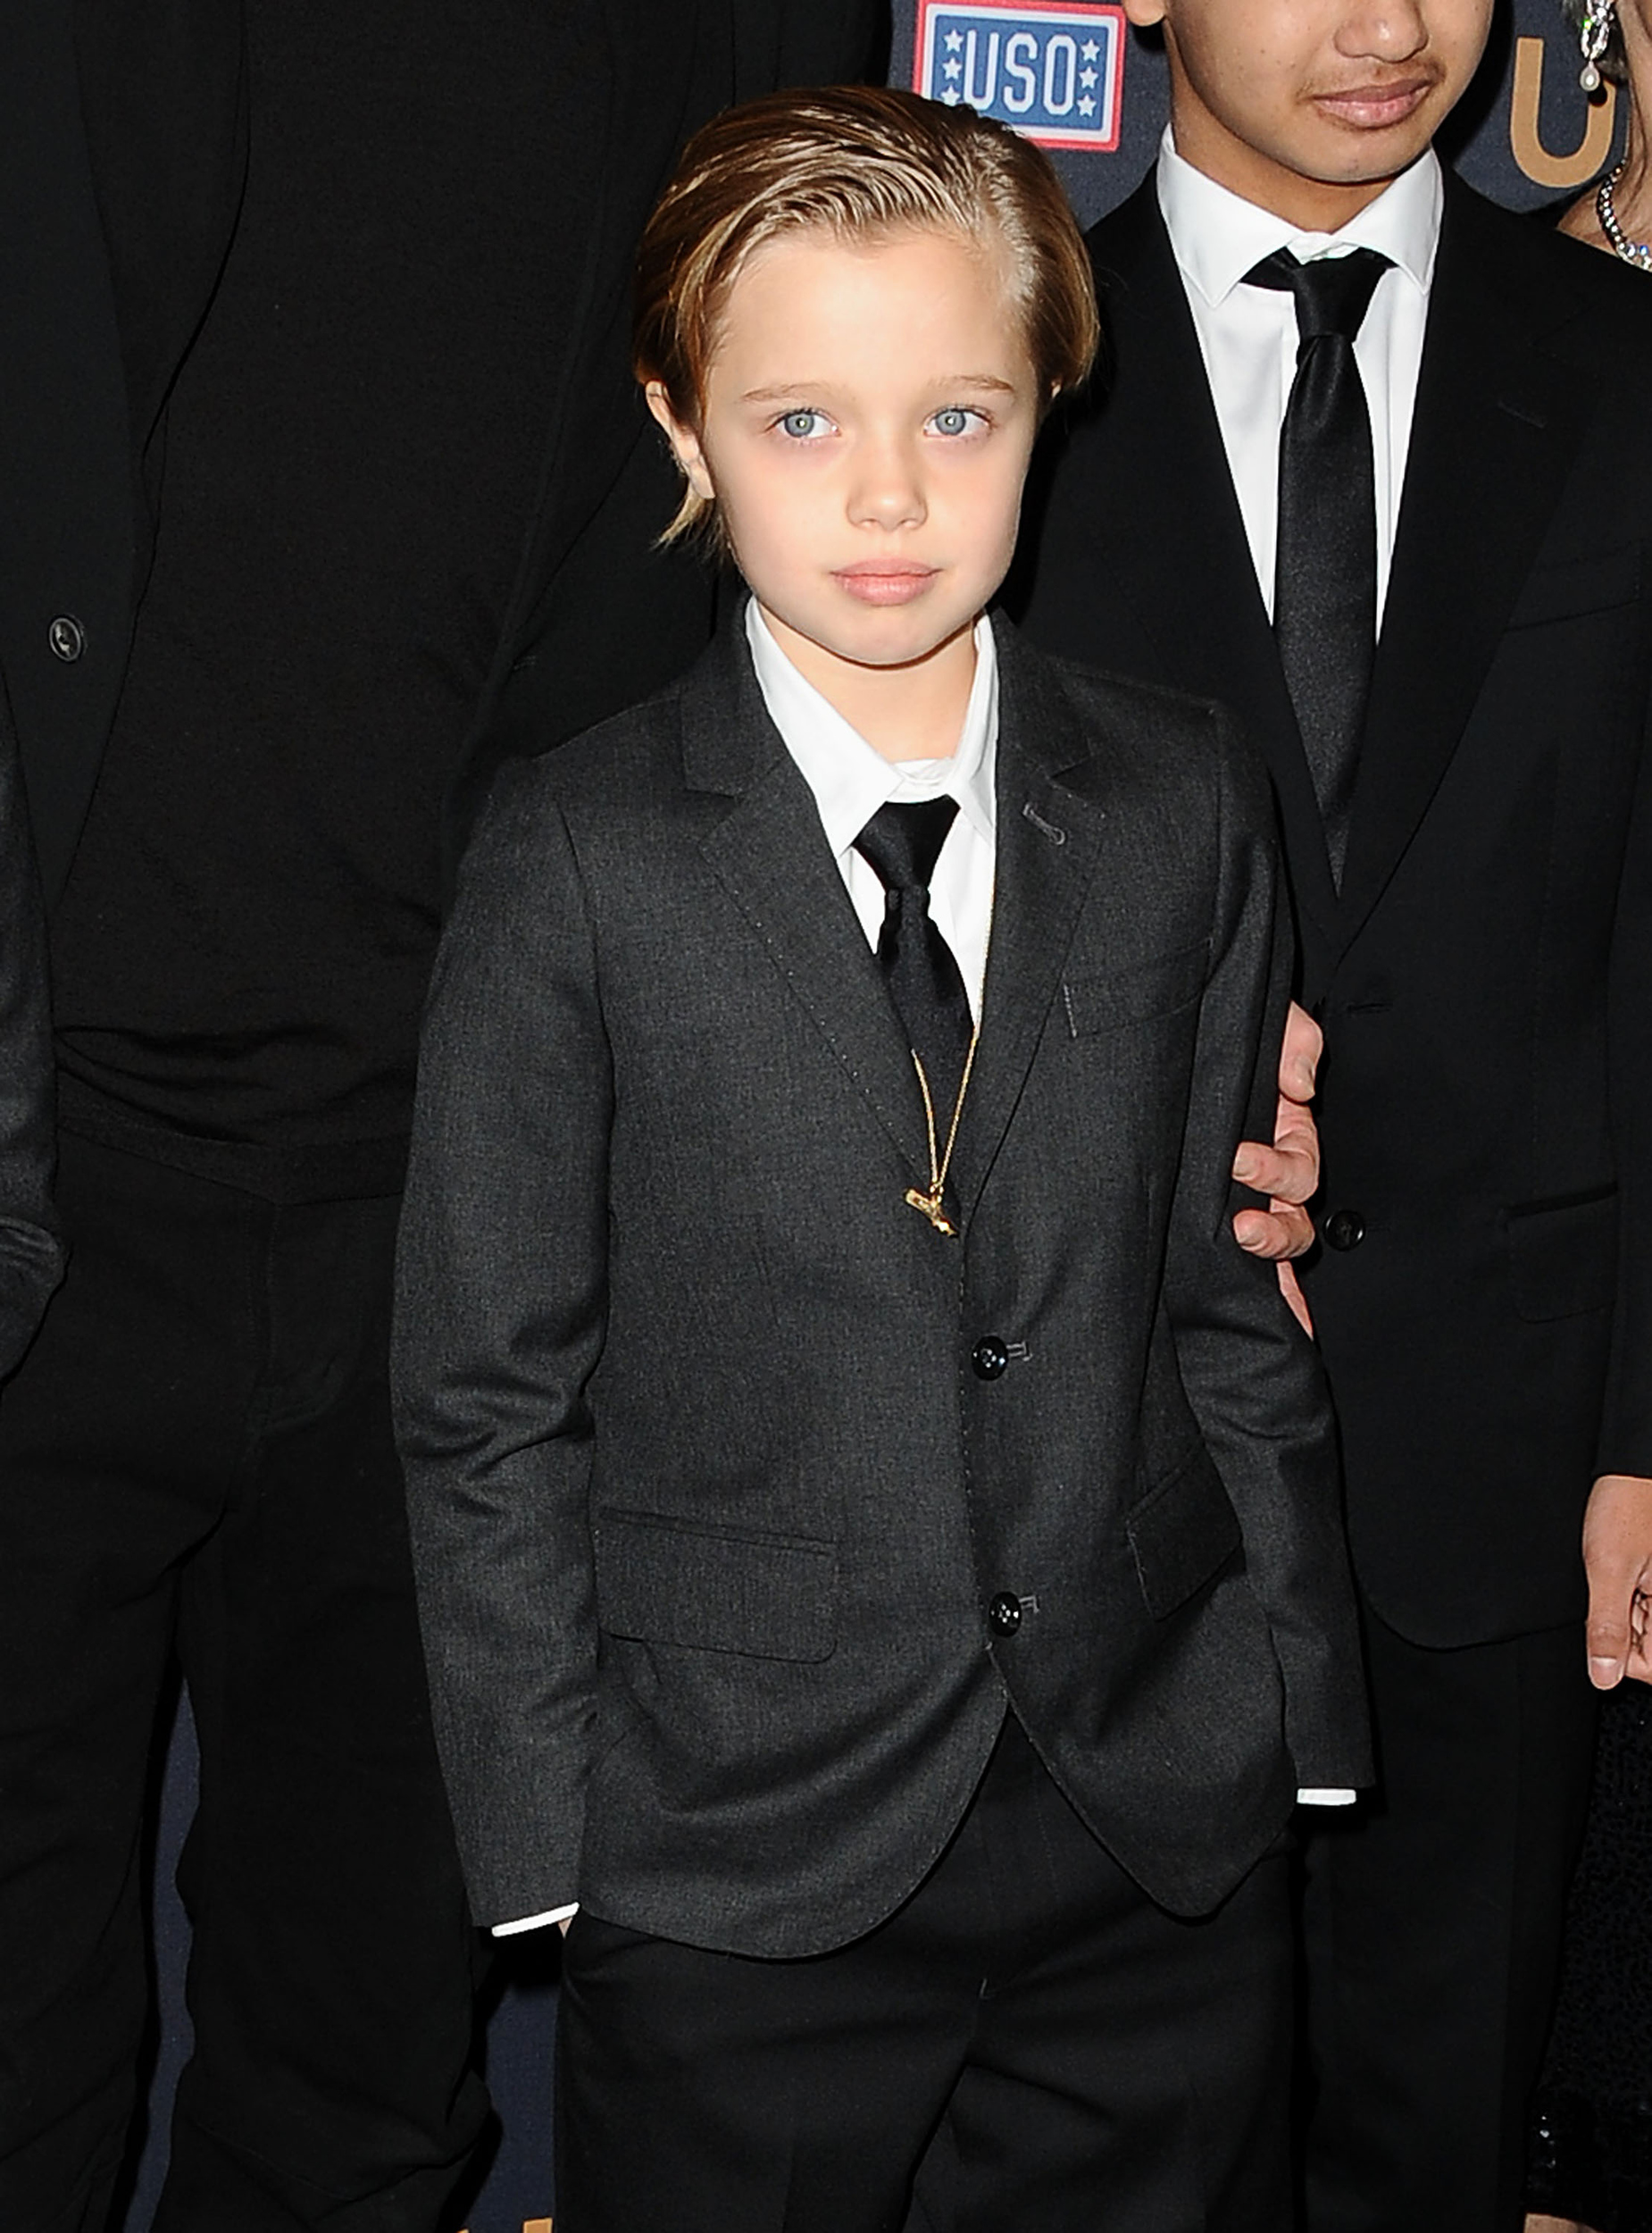 Now: Shiloh Jolie-Pitt